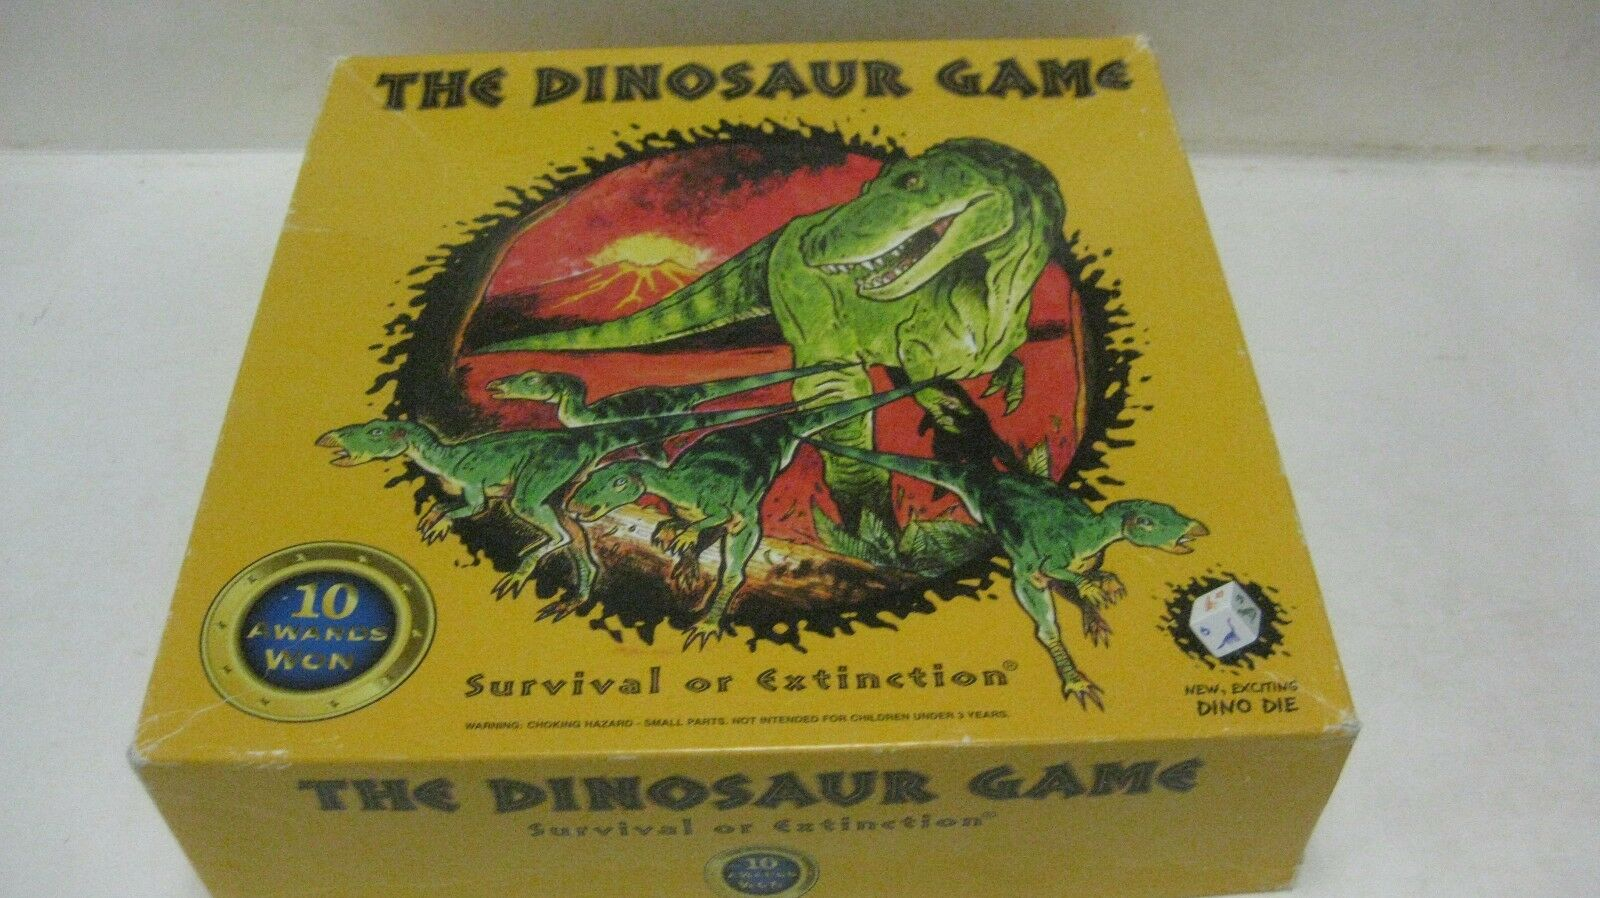 The Dinosaur Board Game 1996 Survival Or Extinction From Latz Chance Games gm276